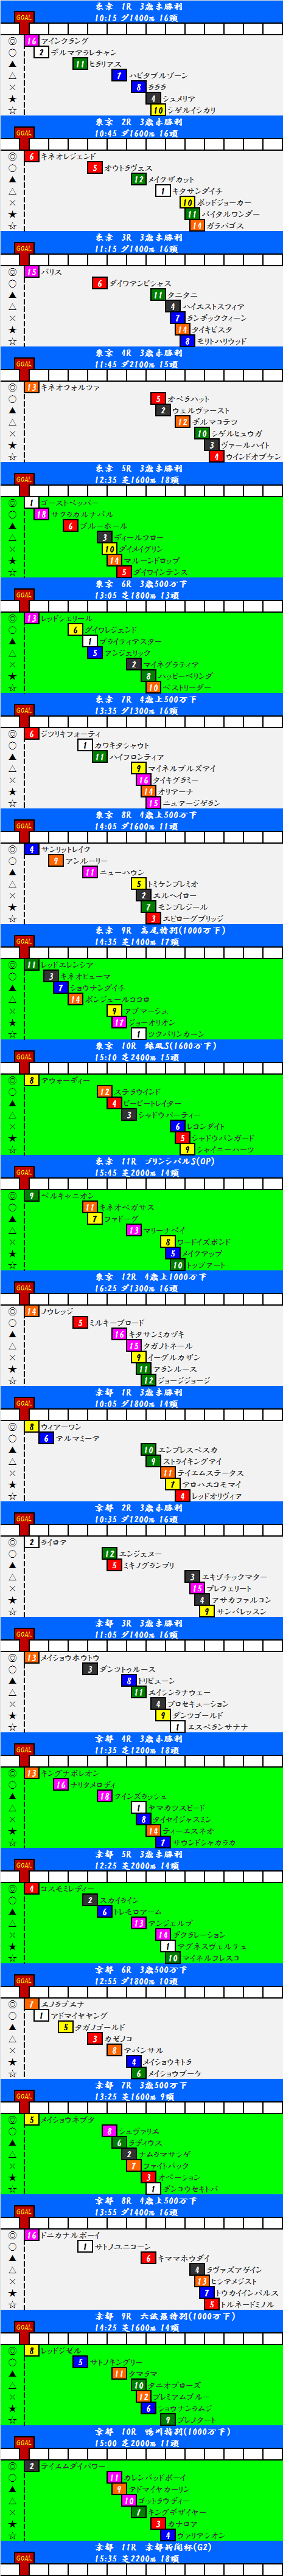 201405101.png